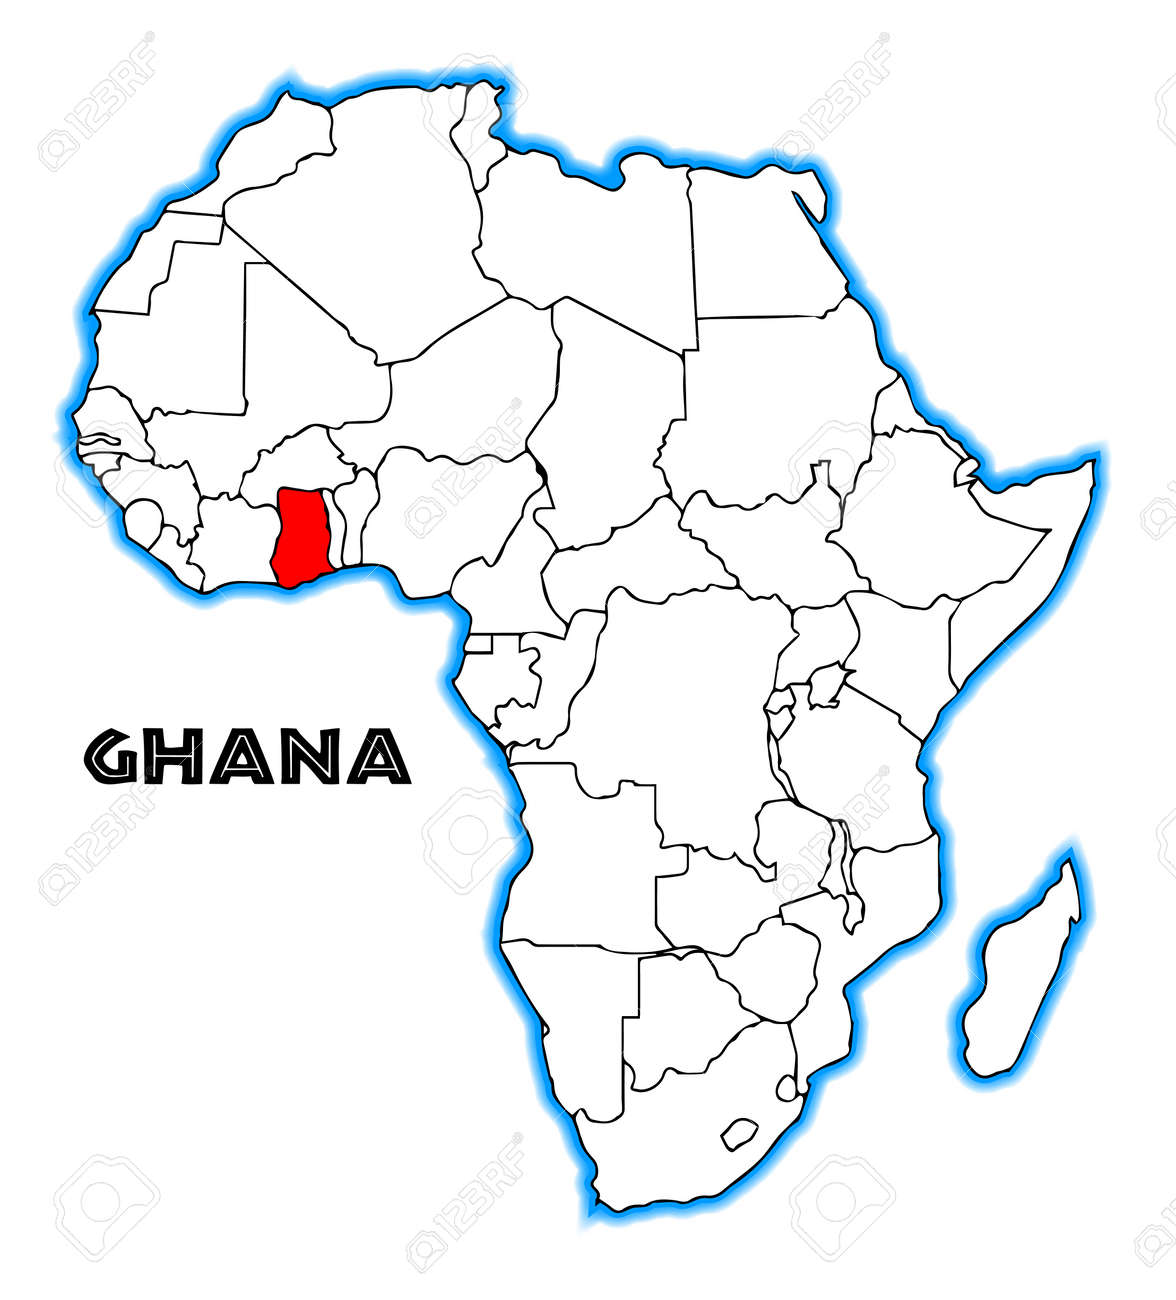 Ghana Outline Inset Into A Map Of Africa Over A White Background